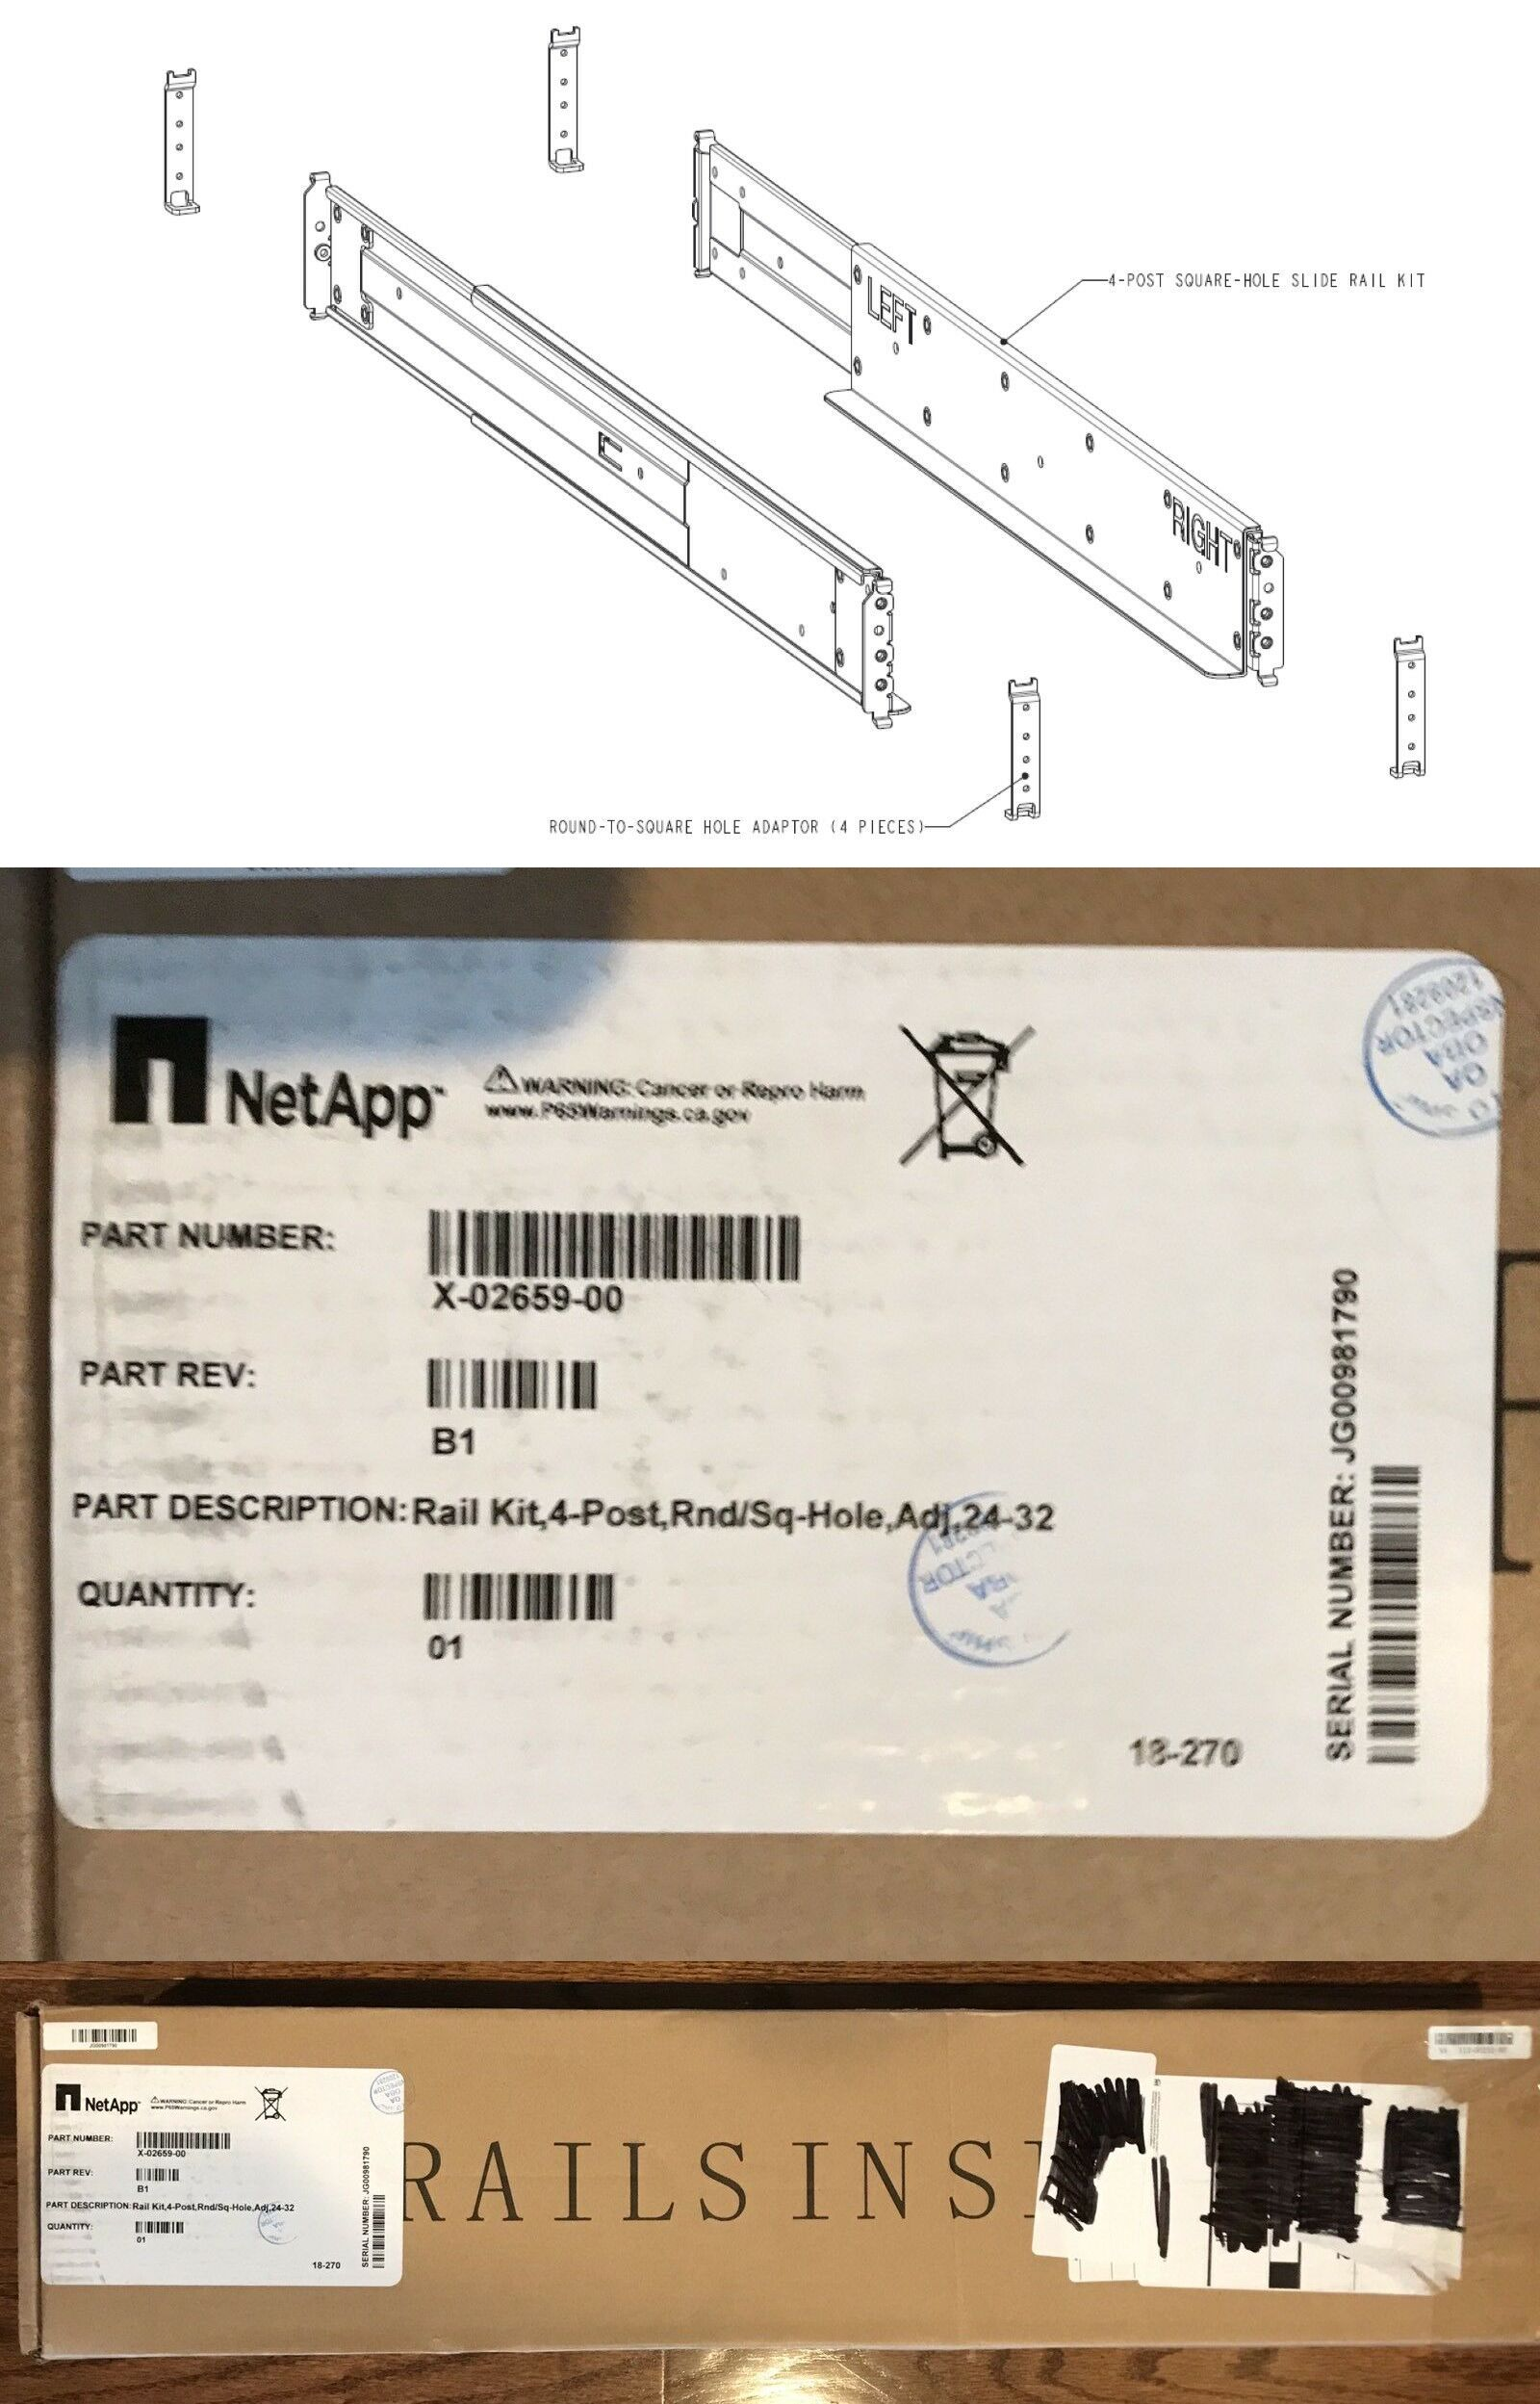 hight resolution of disk array components 58322 netapp x 02659 00 rail kit 4 post square or round hole 24 32 rail buy it now only 35 on ebay array components netapp